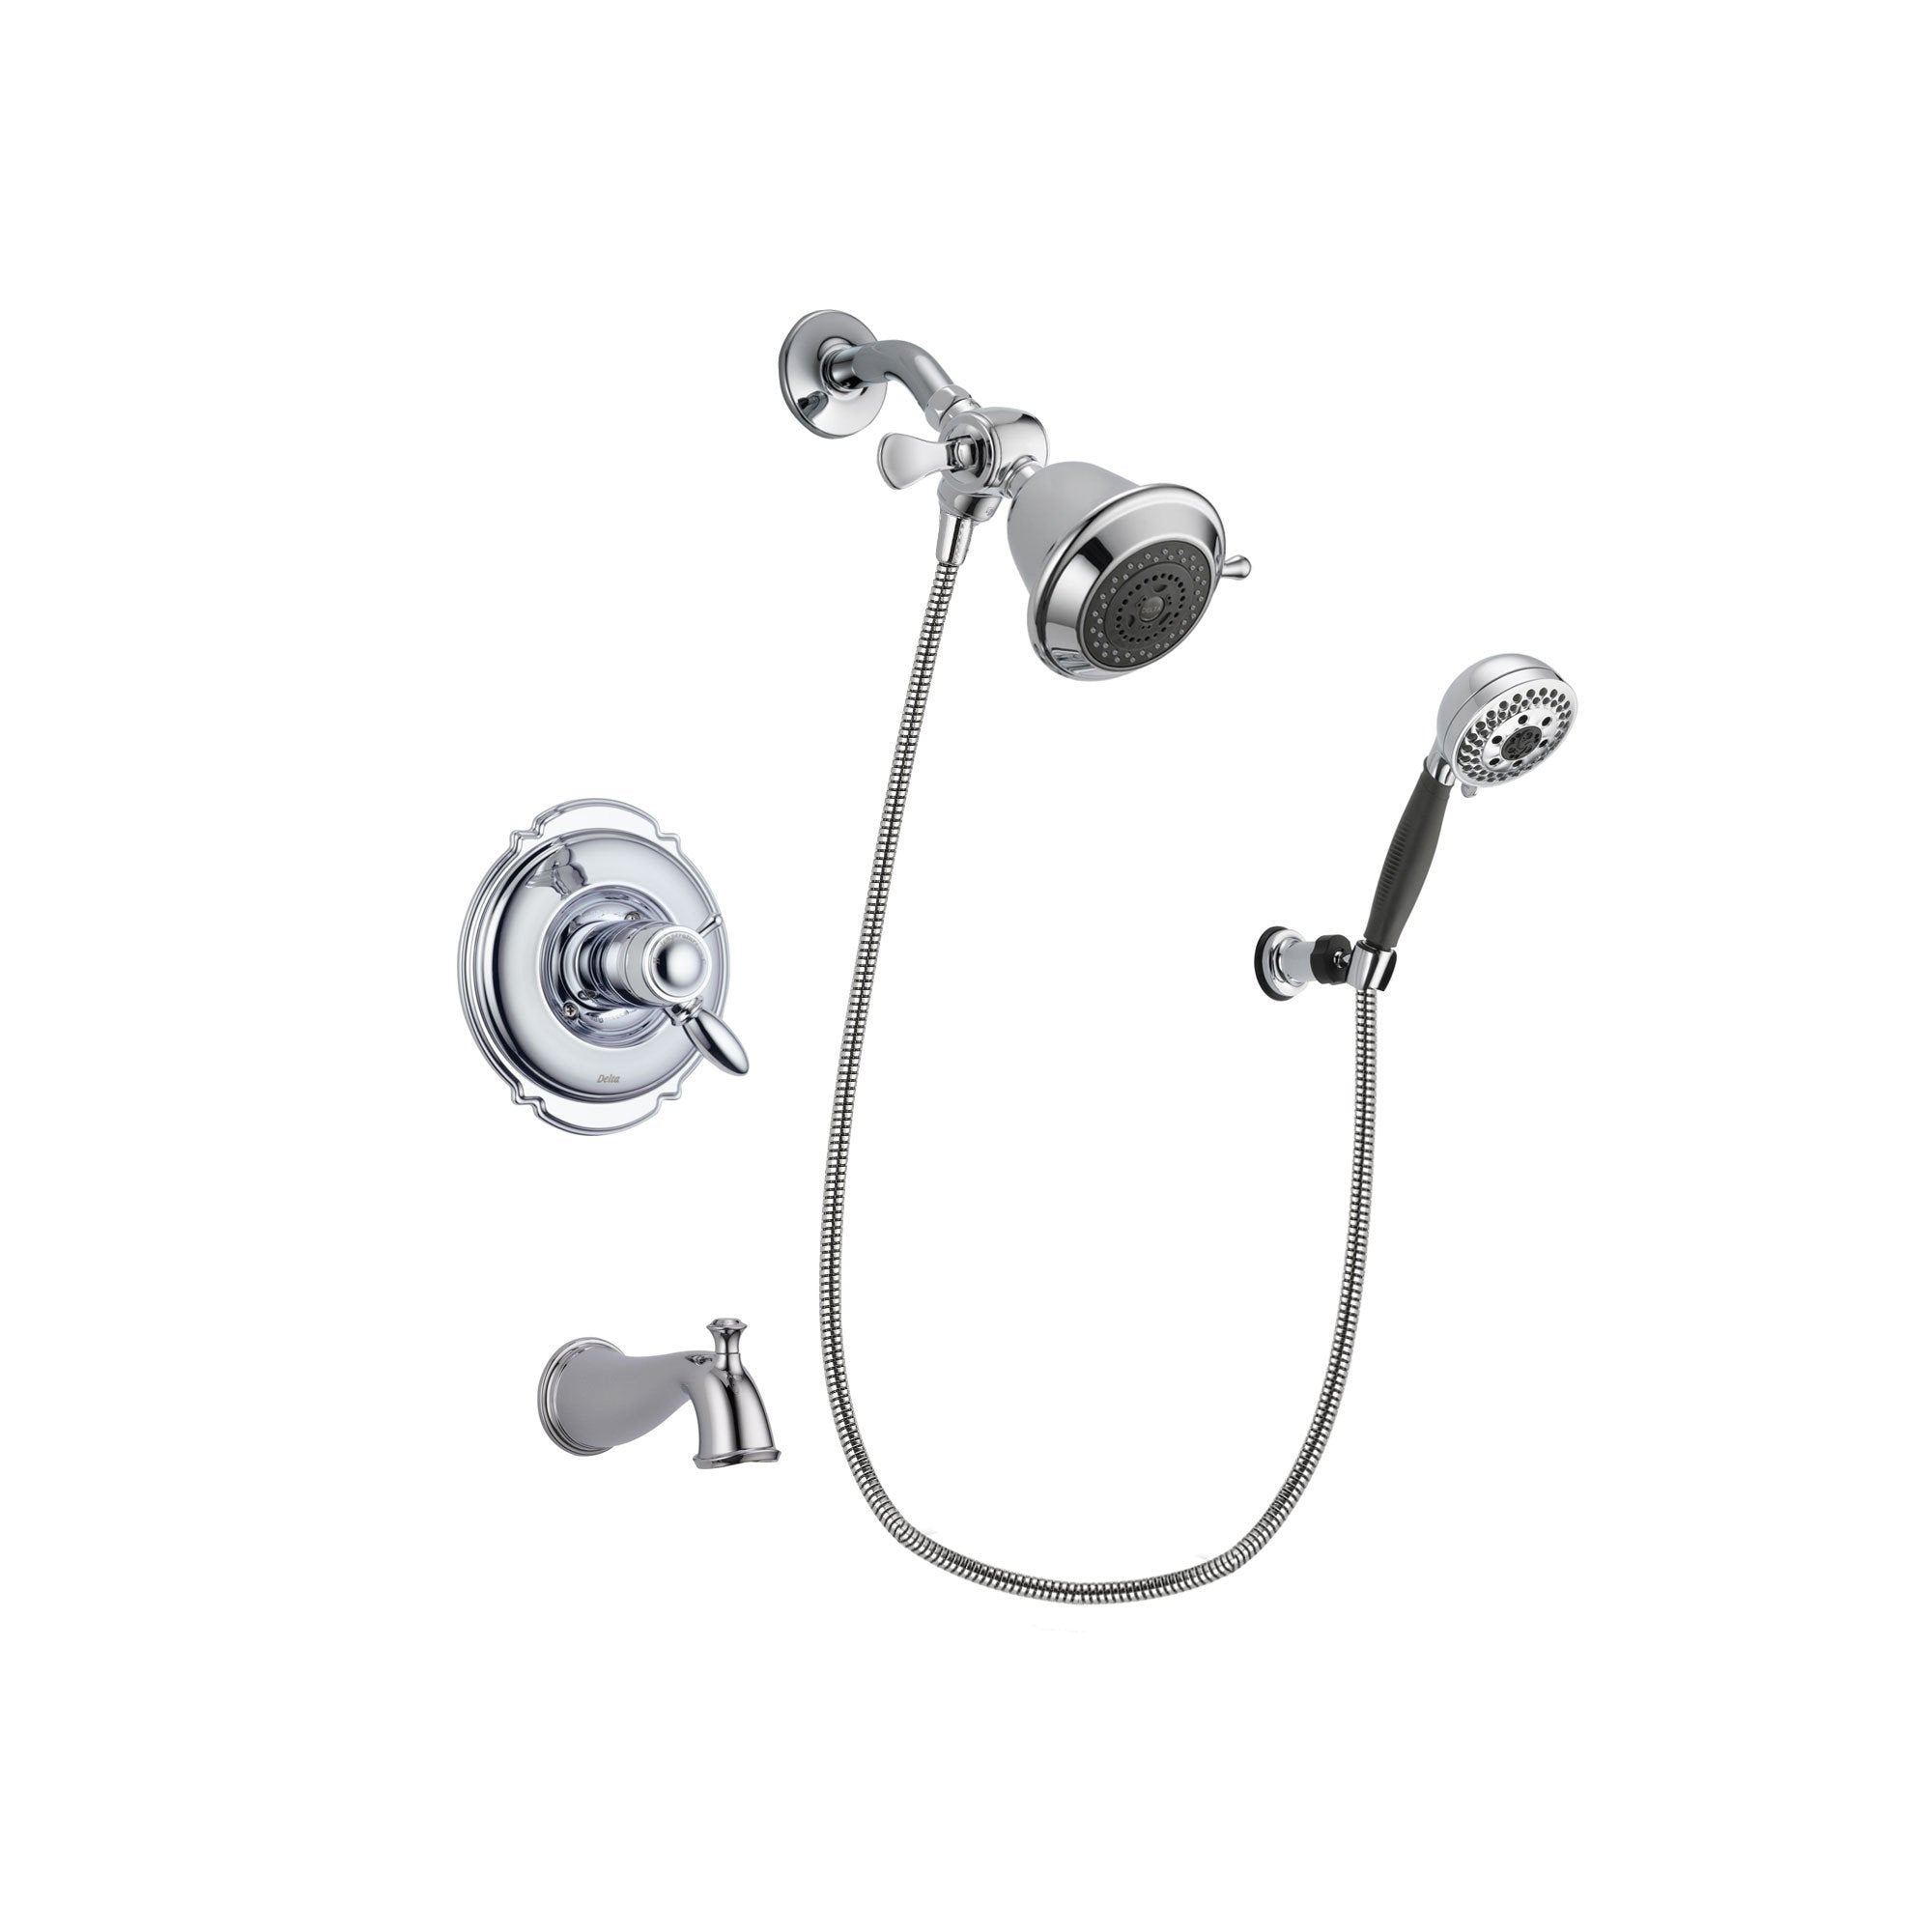 Delta Victorian Chrome Tub and Shower Faucet System with Hand Shower DSP1107V